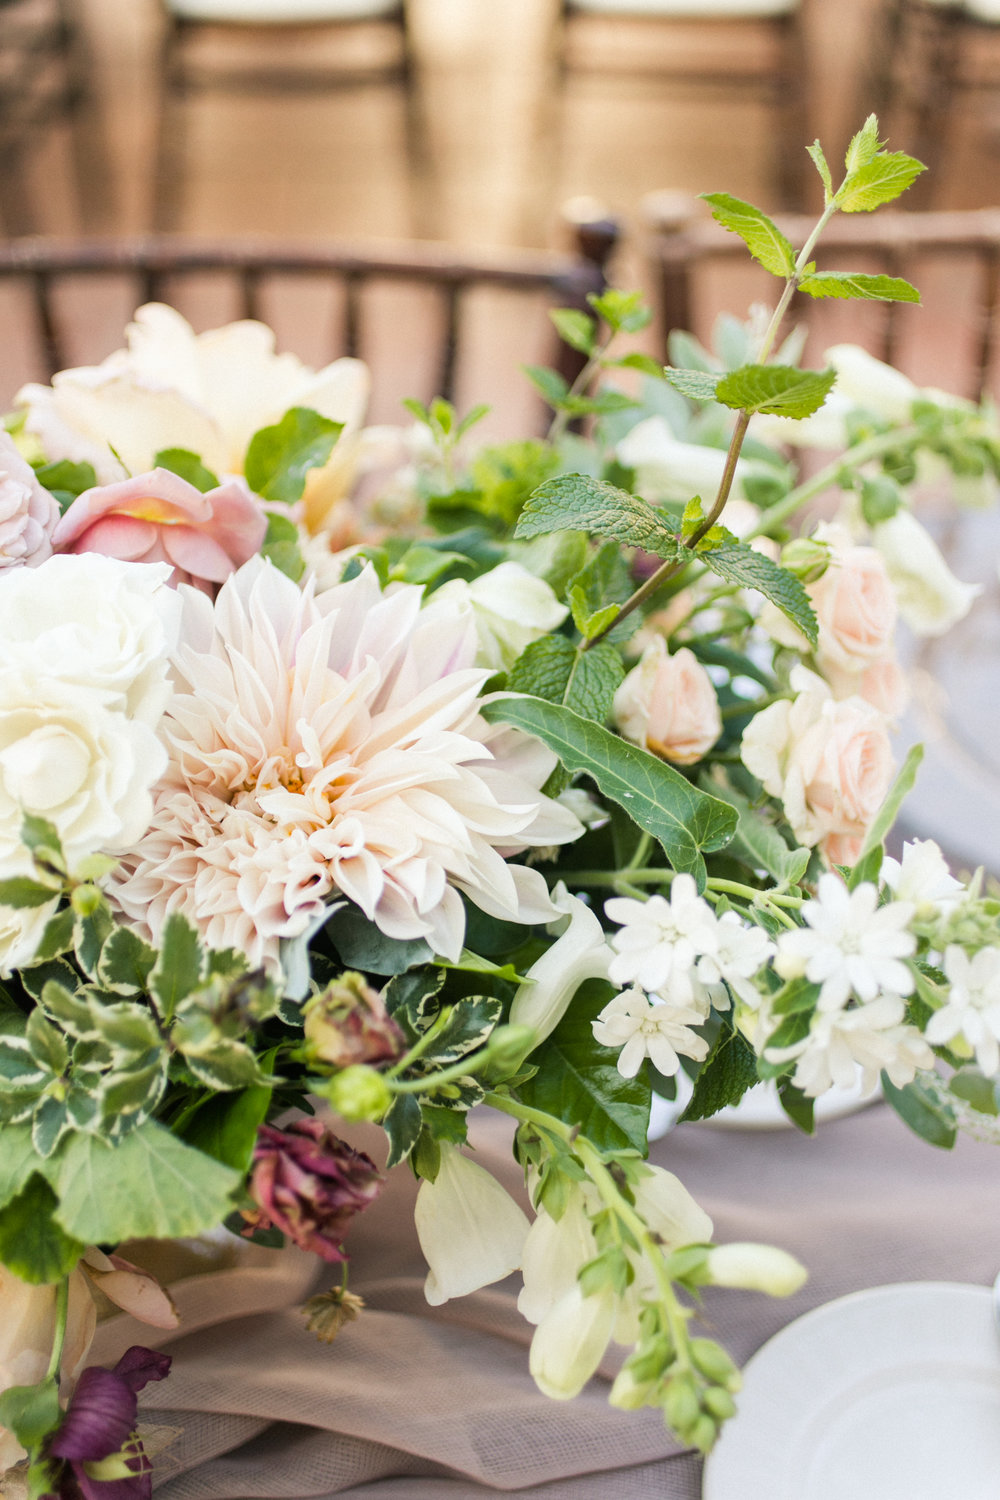 """Browse & Build to your Budget. - We have broken your wedding flowers down by category to make it easier to focus. At any time, you can click on your cart and see where you are at in terms of budget.The best part about this is that we are not restricting you to any style or color palette and this is where the trust in our skill comes in. You will be asked to describe your color palette with each item (where necessary) and explain your style. Every, single, wedding, and client is unique. We want you to tell us what YOU want!It's your day, you decide, we design!For example: When ordering your Bridal Bouquet, (EXPLAIN MORE)Our design product descriptions are meant to make you feel like you're having a conversation with us about flowers in the comfort of your own environment, at any time, anywhere. We explain what each design entails and but allow you to tell us your color palette and style.We also have """"Styling Suggestions"""" for items that can serve multiple purposes. After hundreds of weddings we have seen it all and want you to get the most out of your flowers.Still Not sure? May we suggest looking at our portfolio from past clients to give you a feel for the magic we are creating through flowers. Trust us!It's effortless, elegant and simple, just like our flowers.*****Yeah, it's that easy. You can take as much time as you need to browse our store- book when you are ready and check out this awesome"""